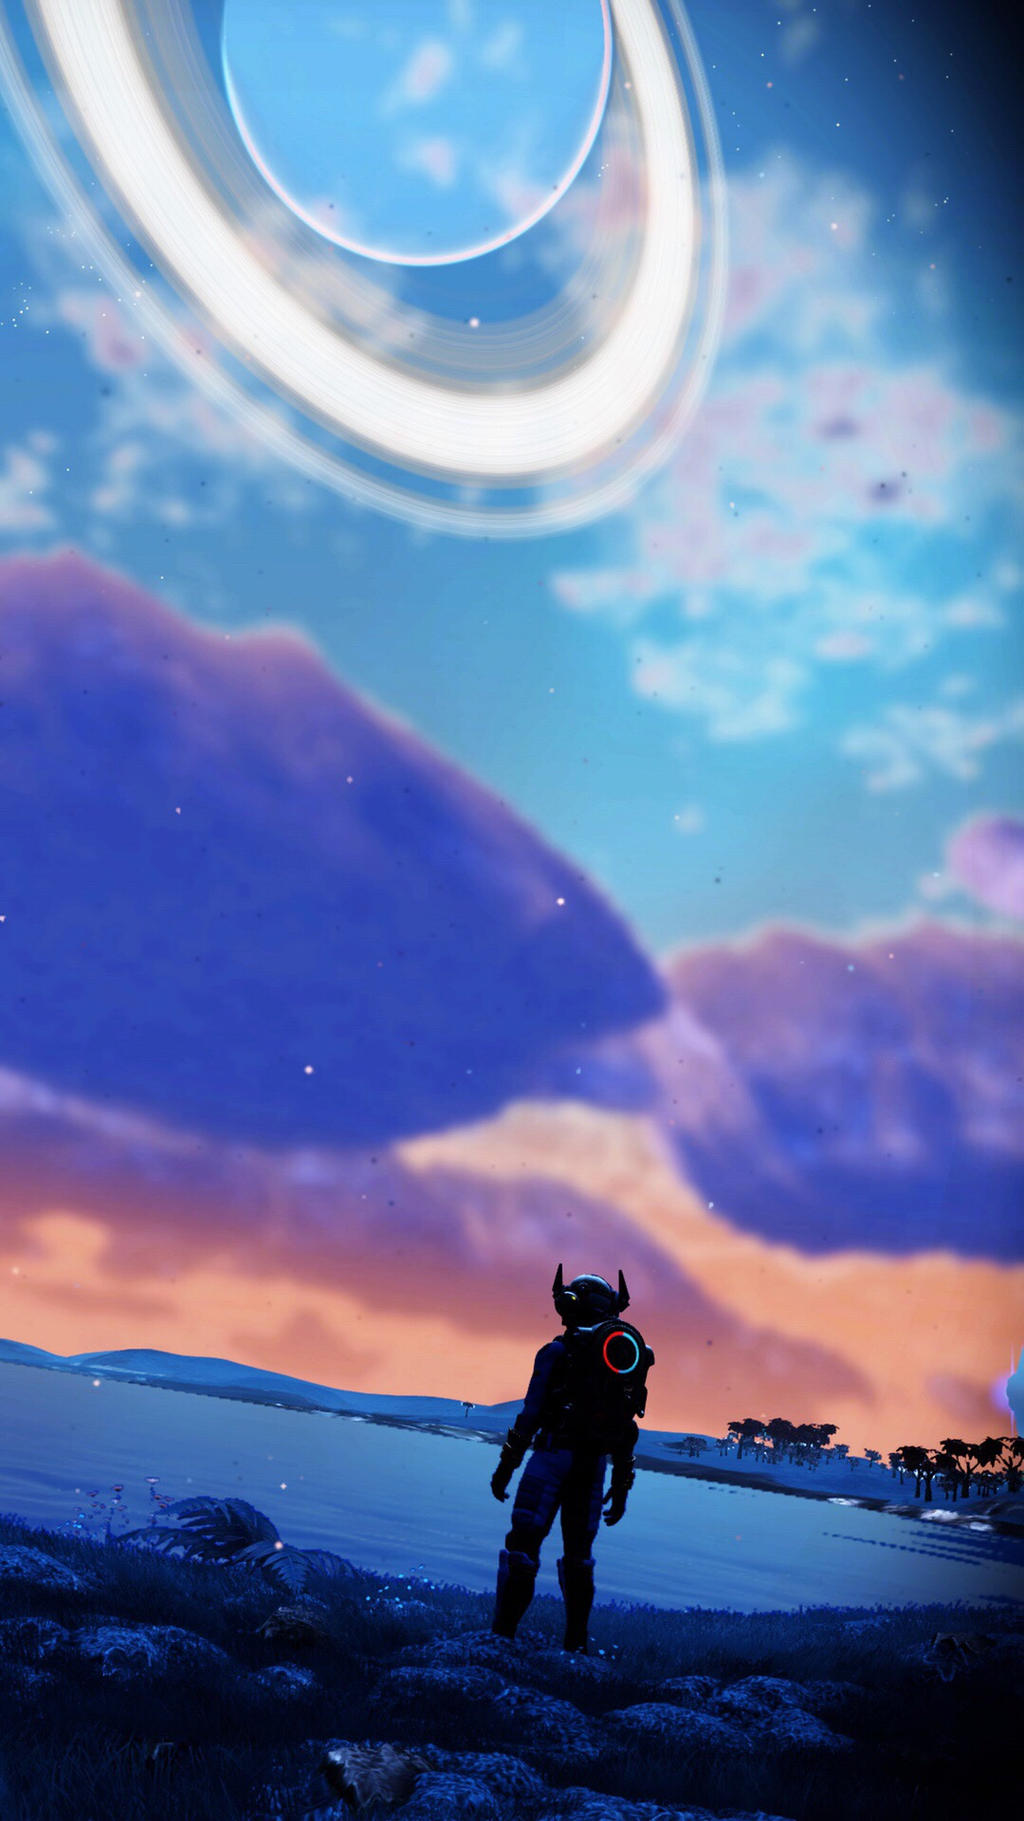 No Mans Sky Next Phone Wallpaper By Shadowthehedgehog24 On Deviantart